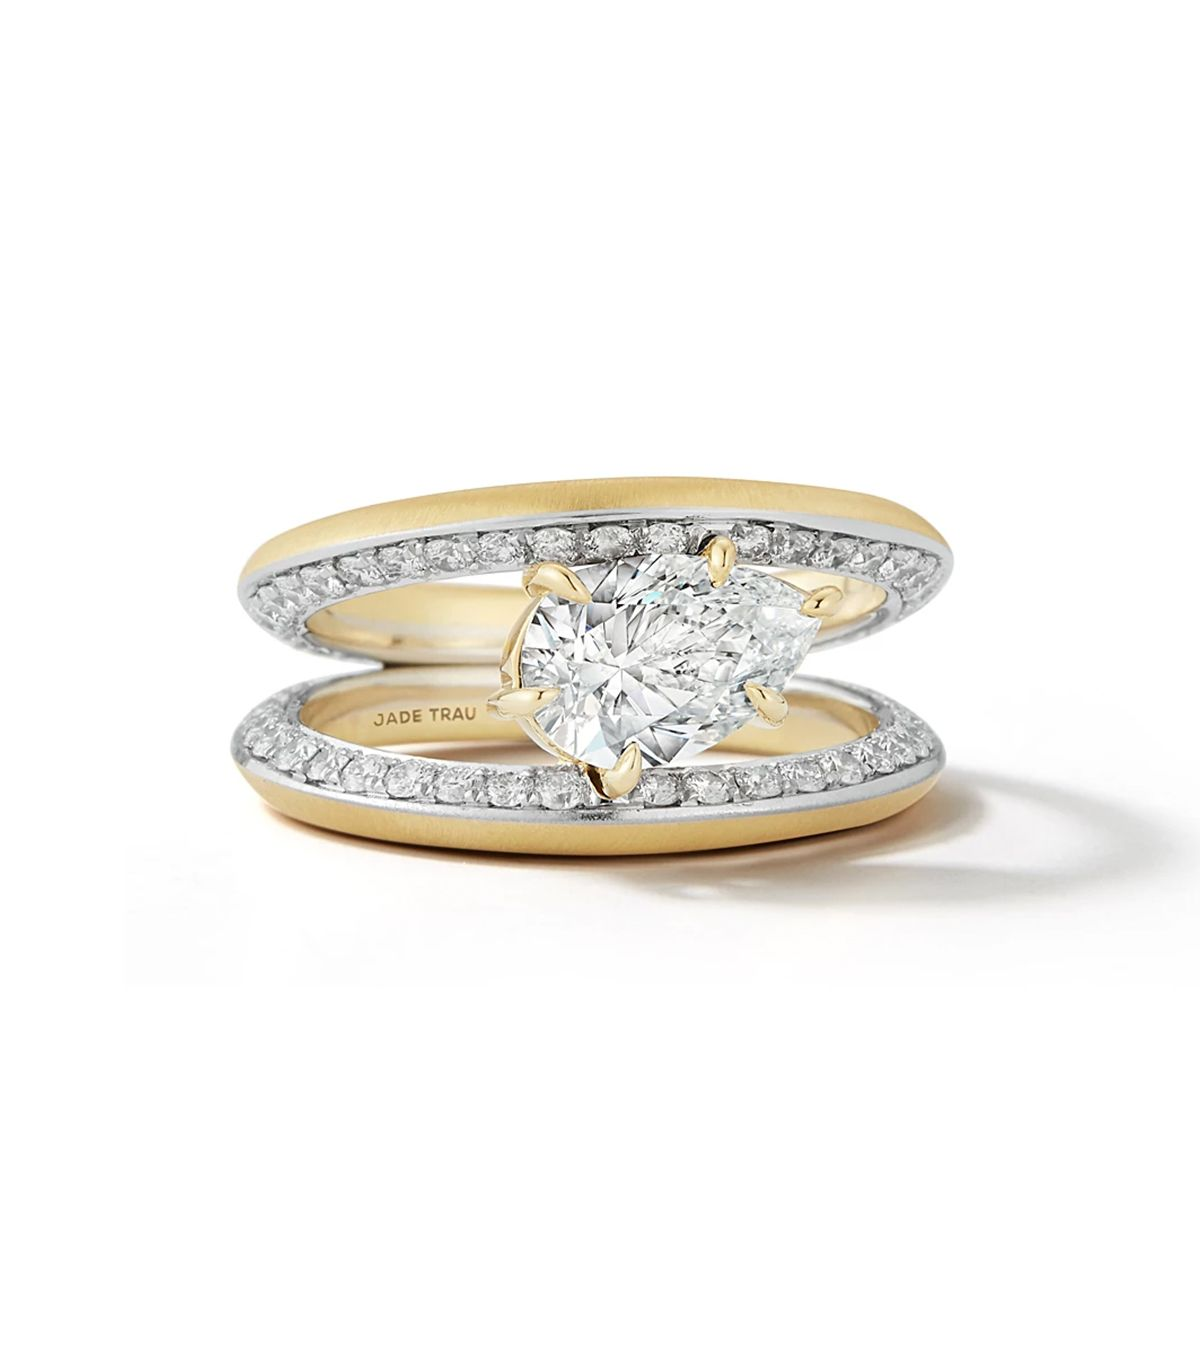 7 Things That Always Make an Engagement Ring Look Cheap 7